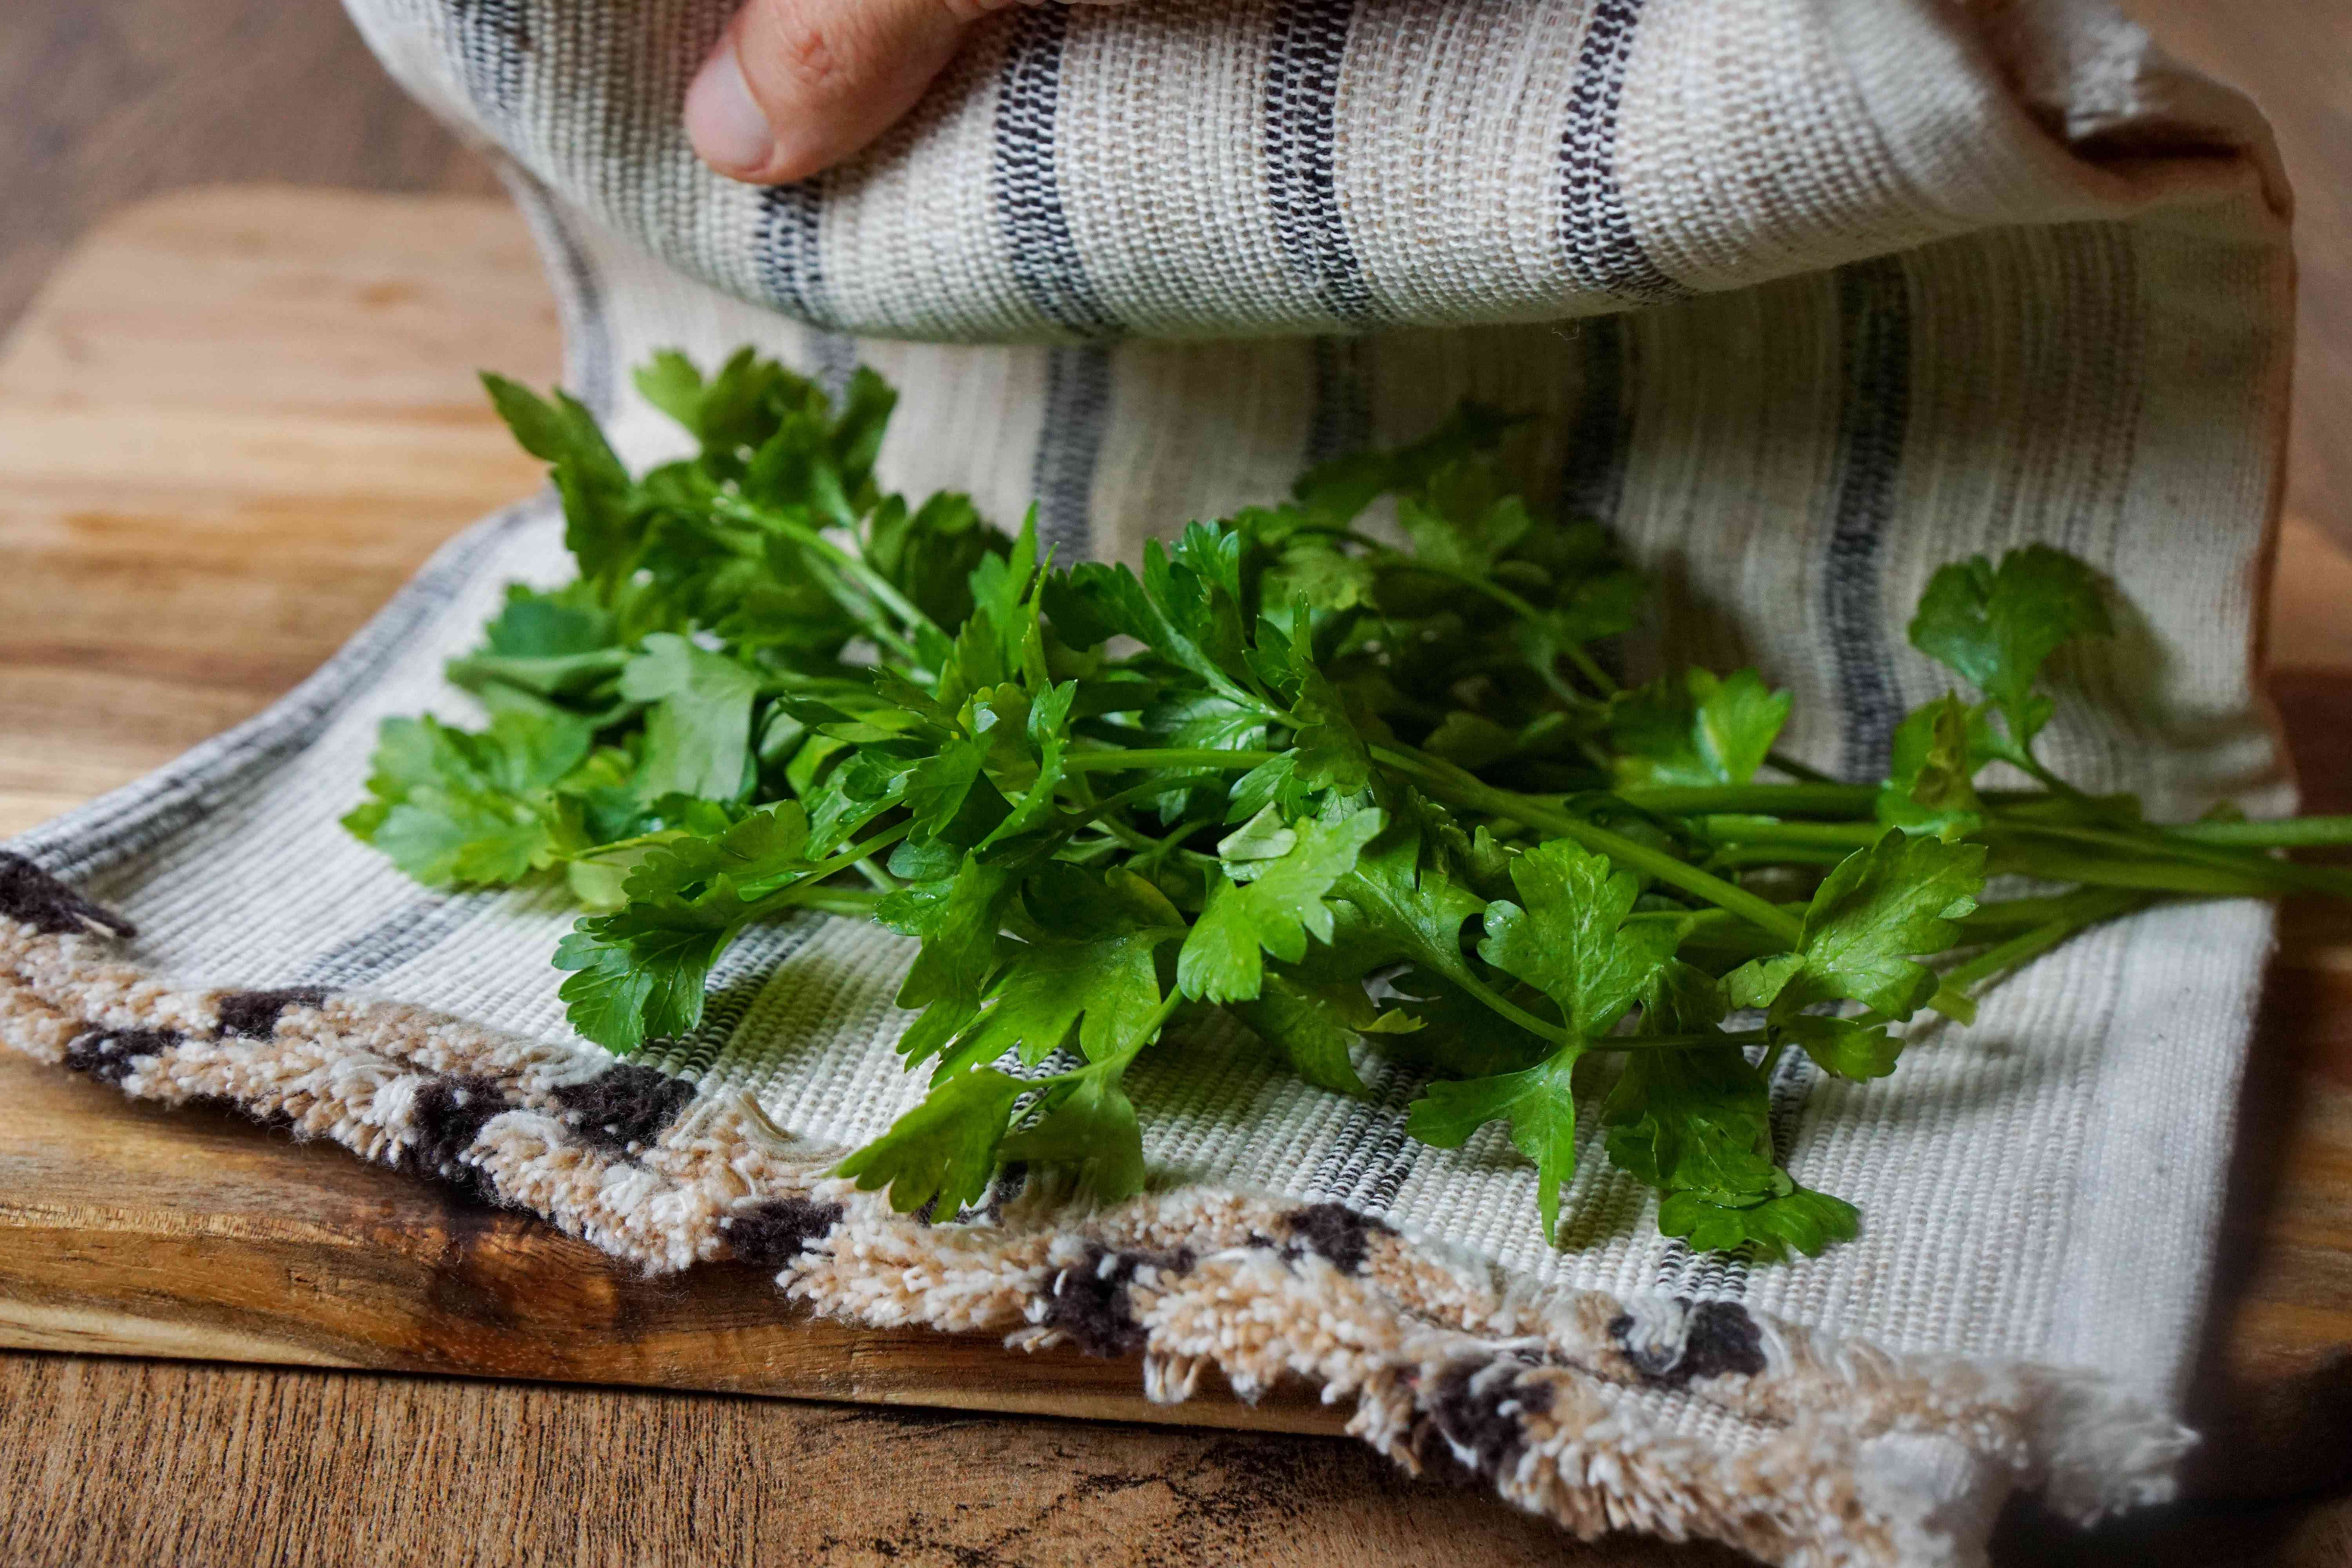 fresh parsley is wrapped with damp tea cloth to preserve and store